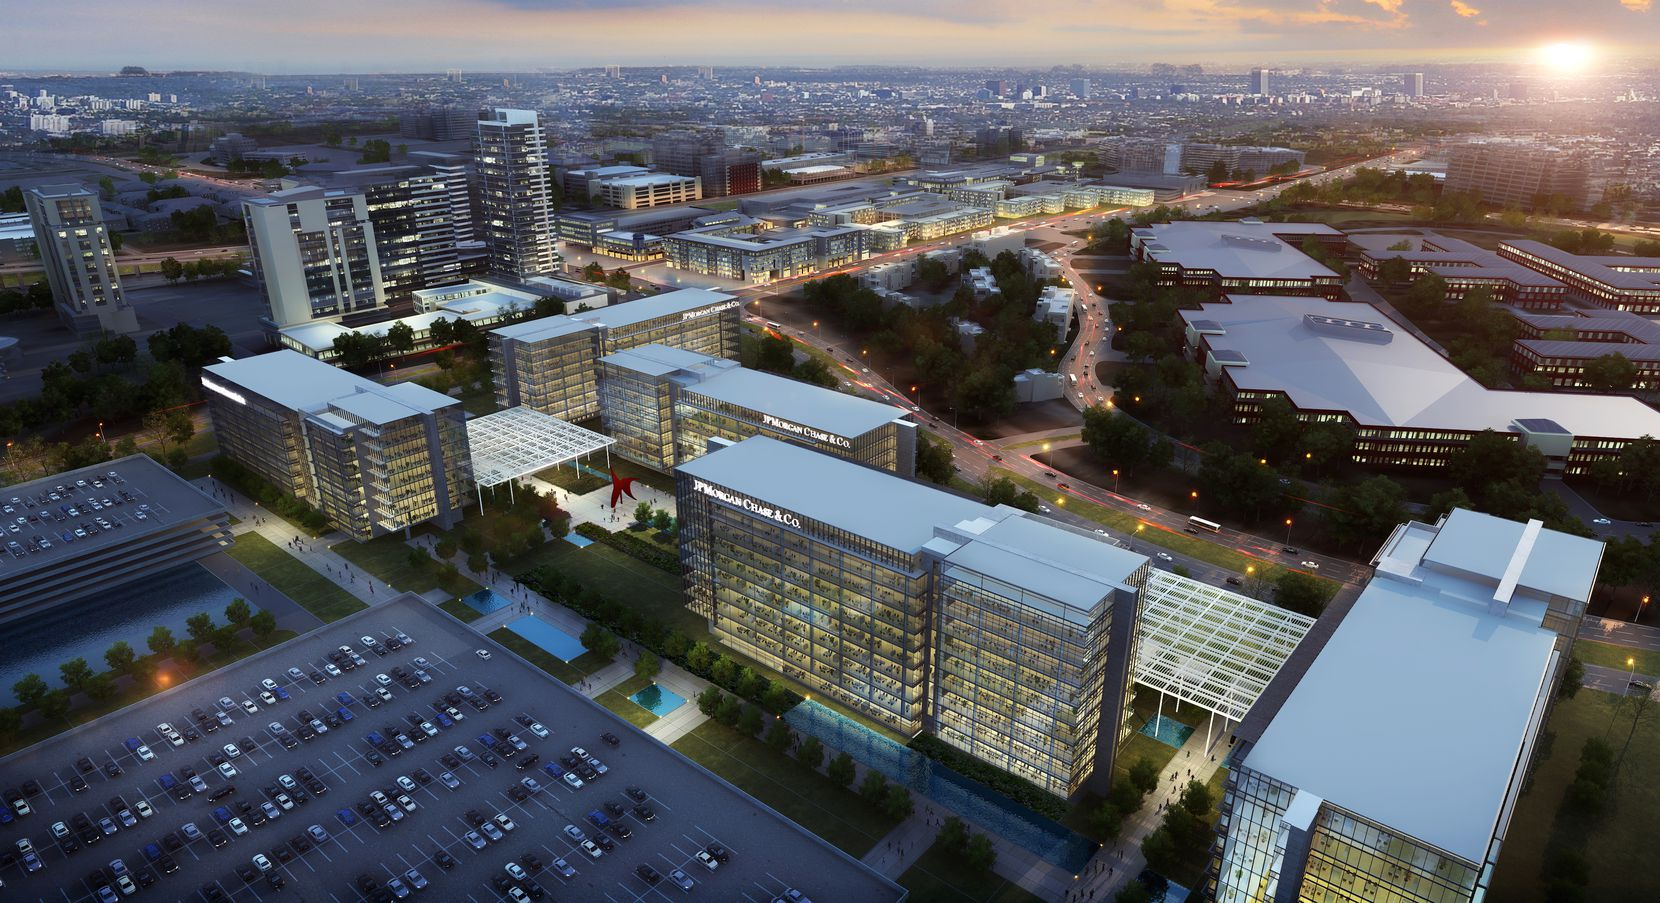 JPMorgan Chase's 1 million-square-foot, more than $300 million Plano office campus was originally shown to have five or more office buildings.